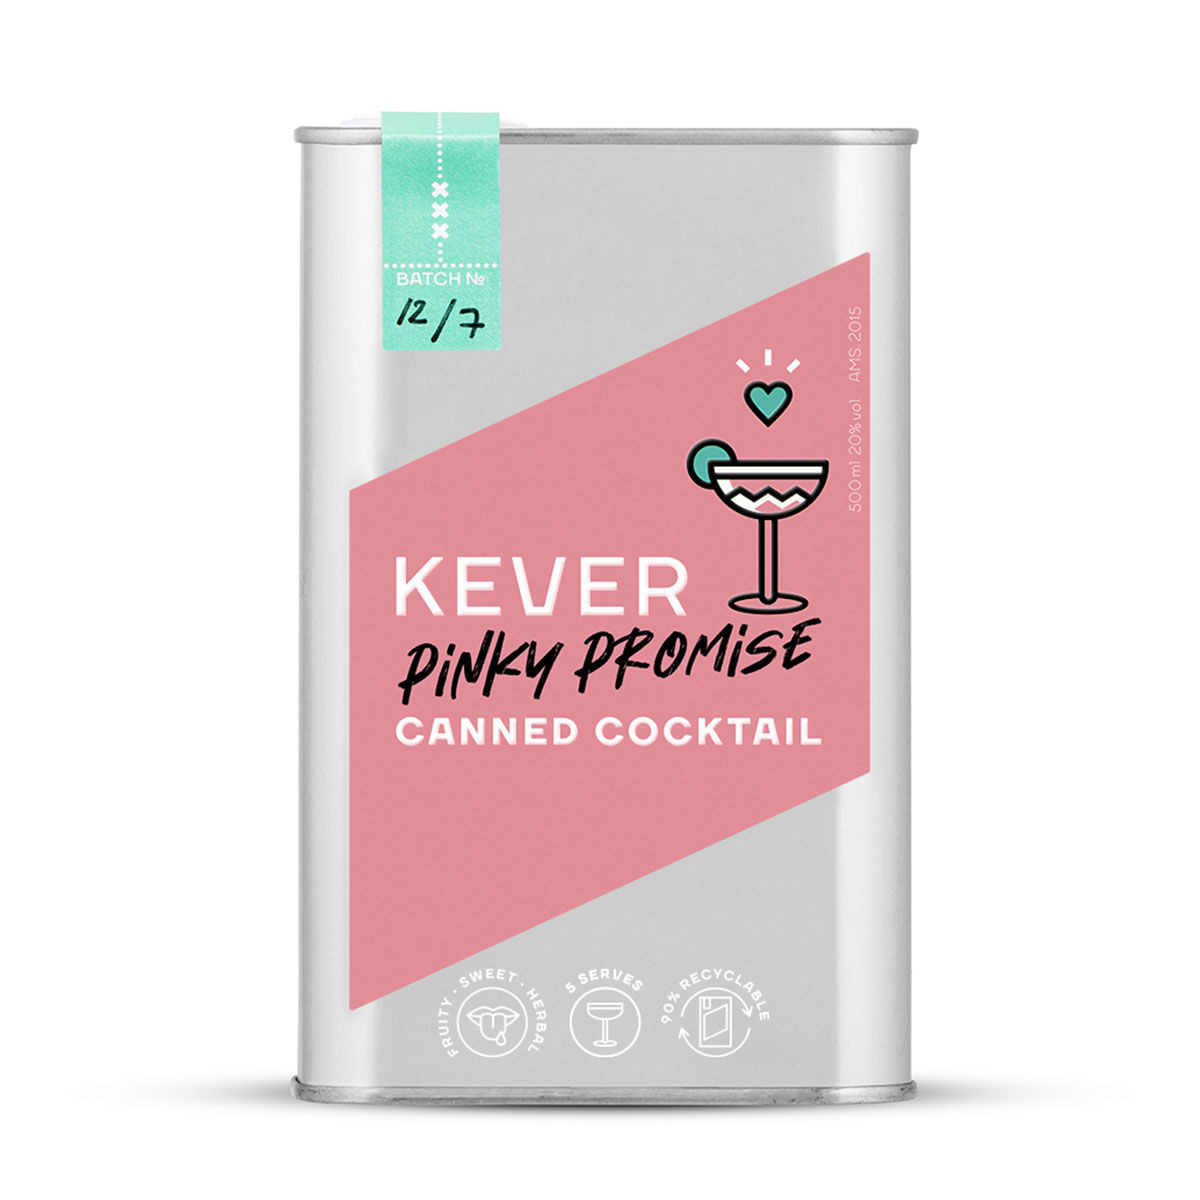 Kever Pinky Promise cocktail